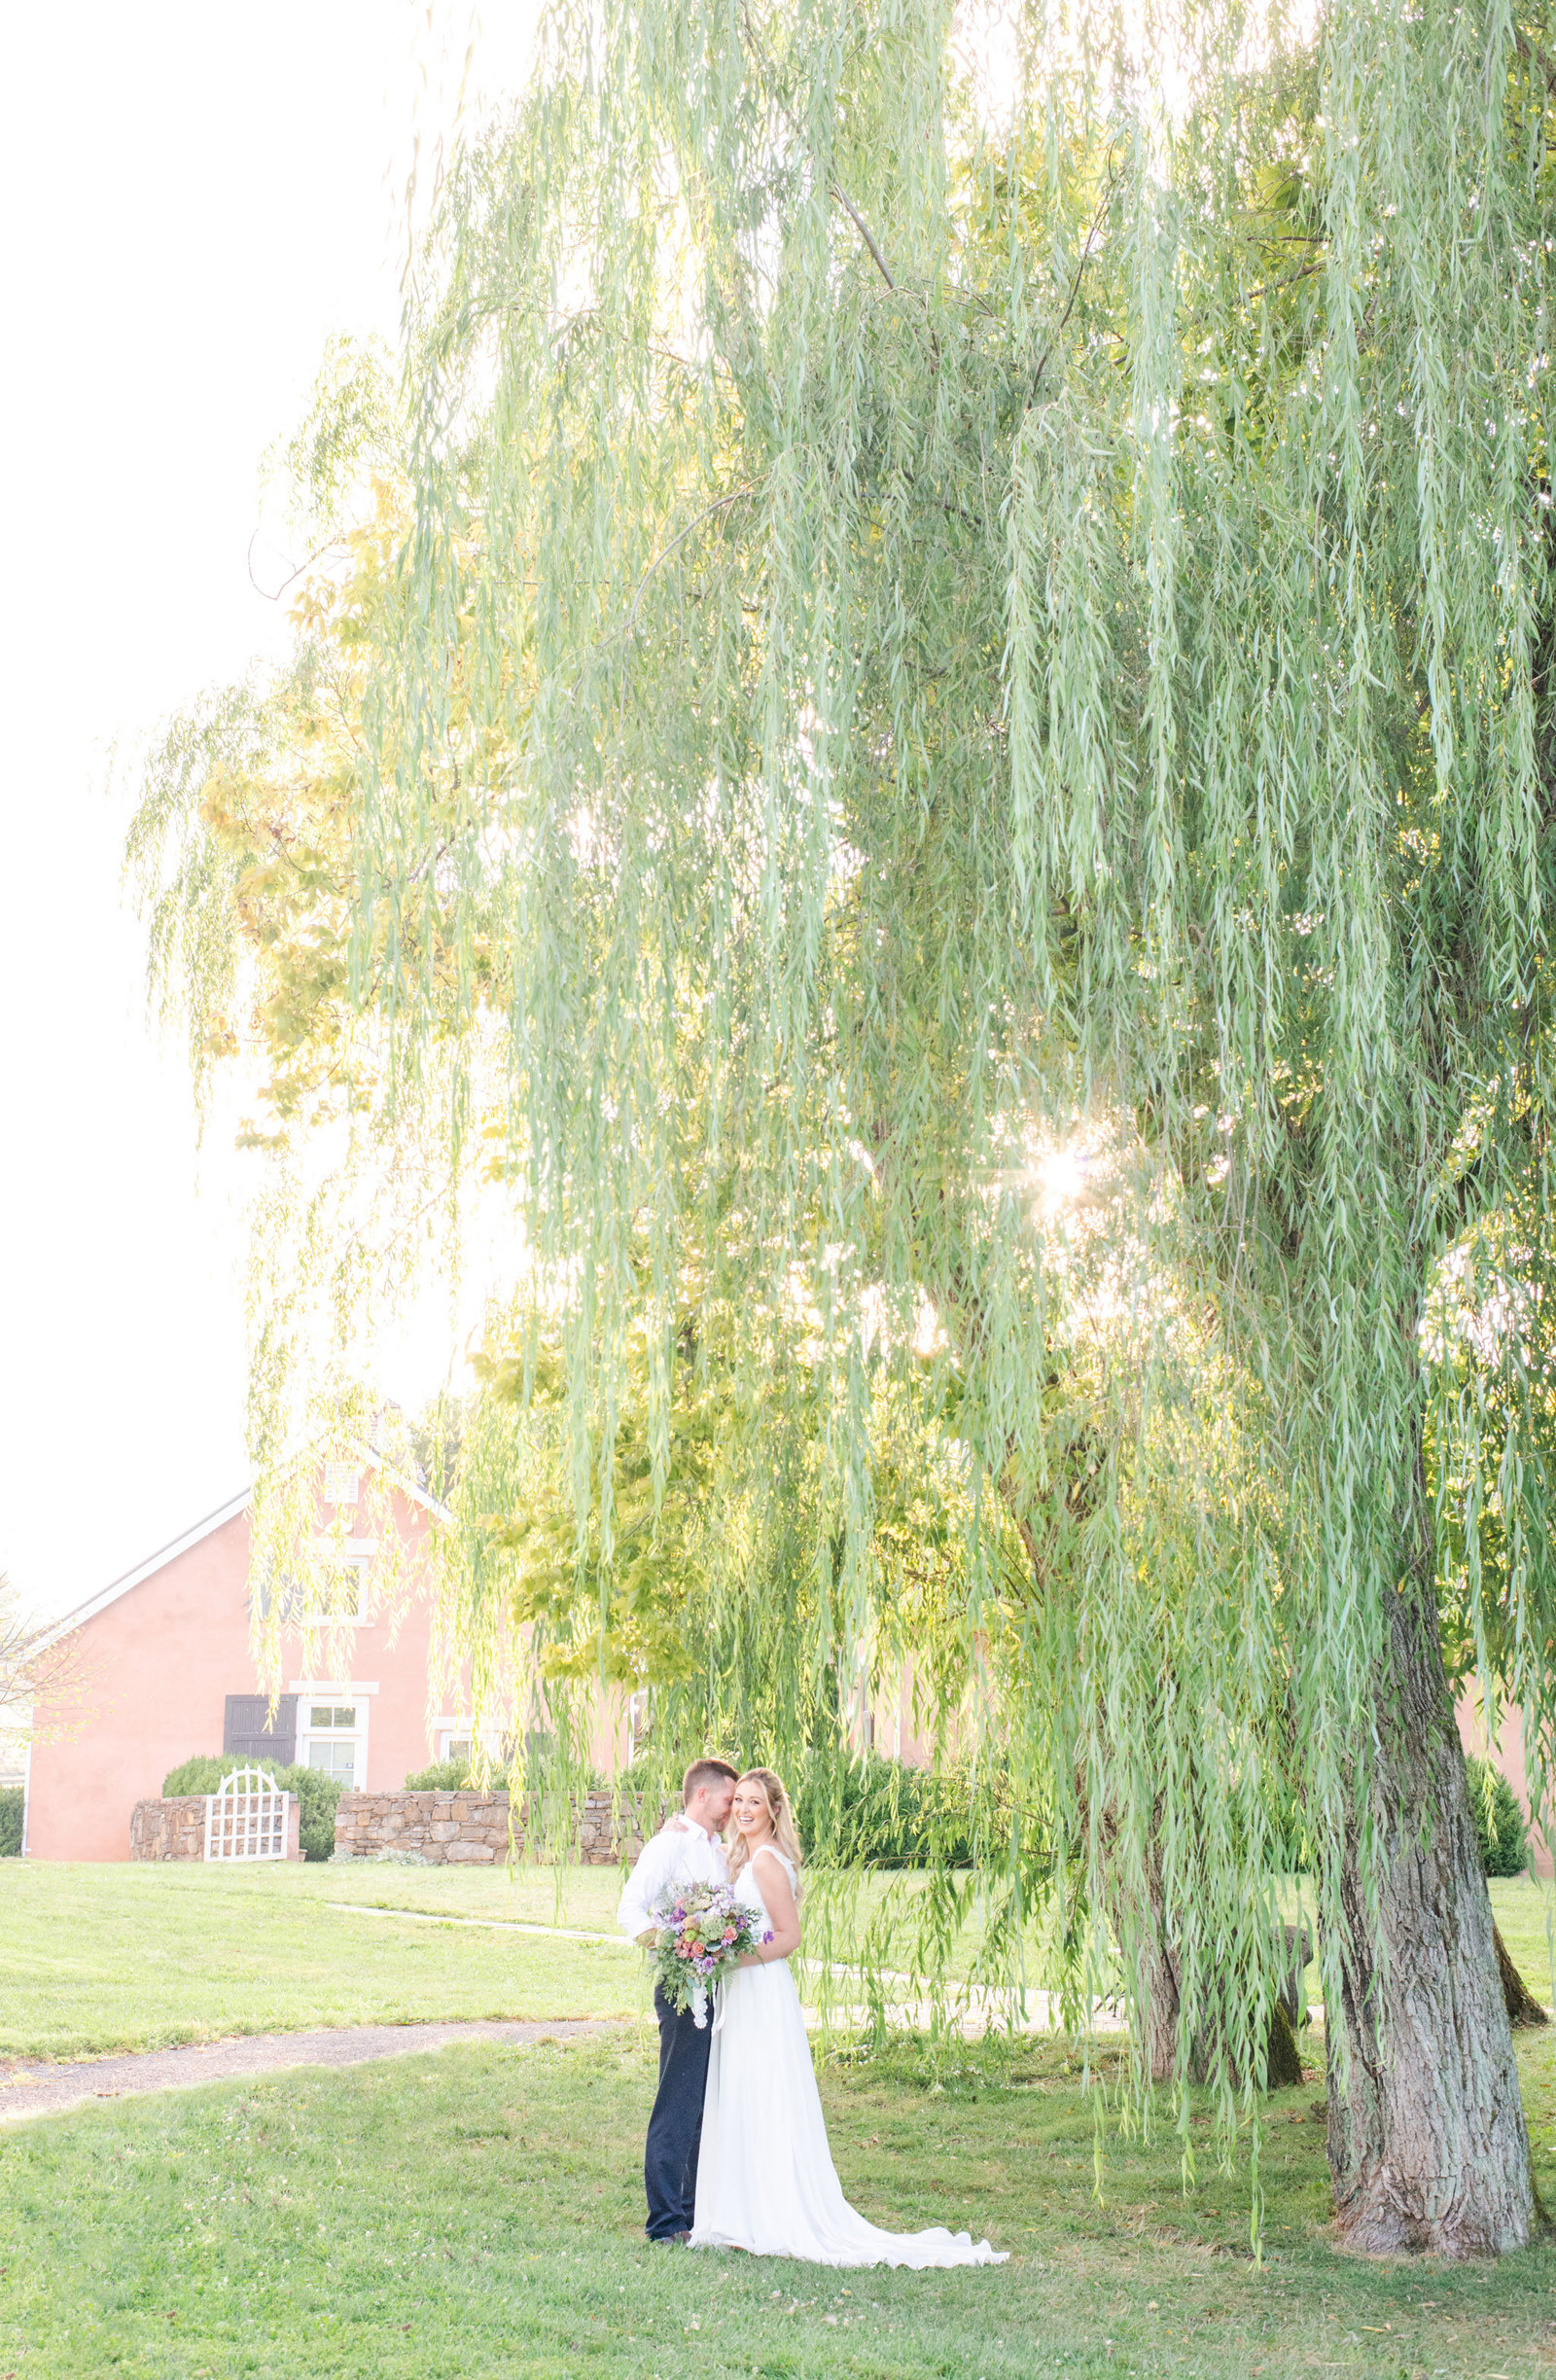 Couple embracing under weeping willow garden